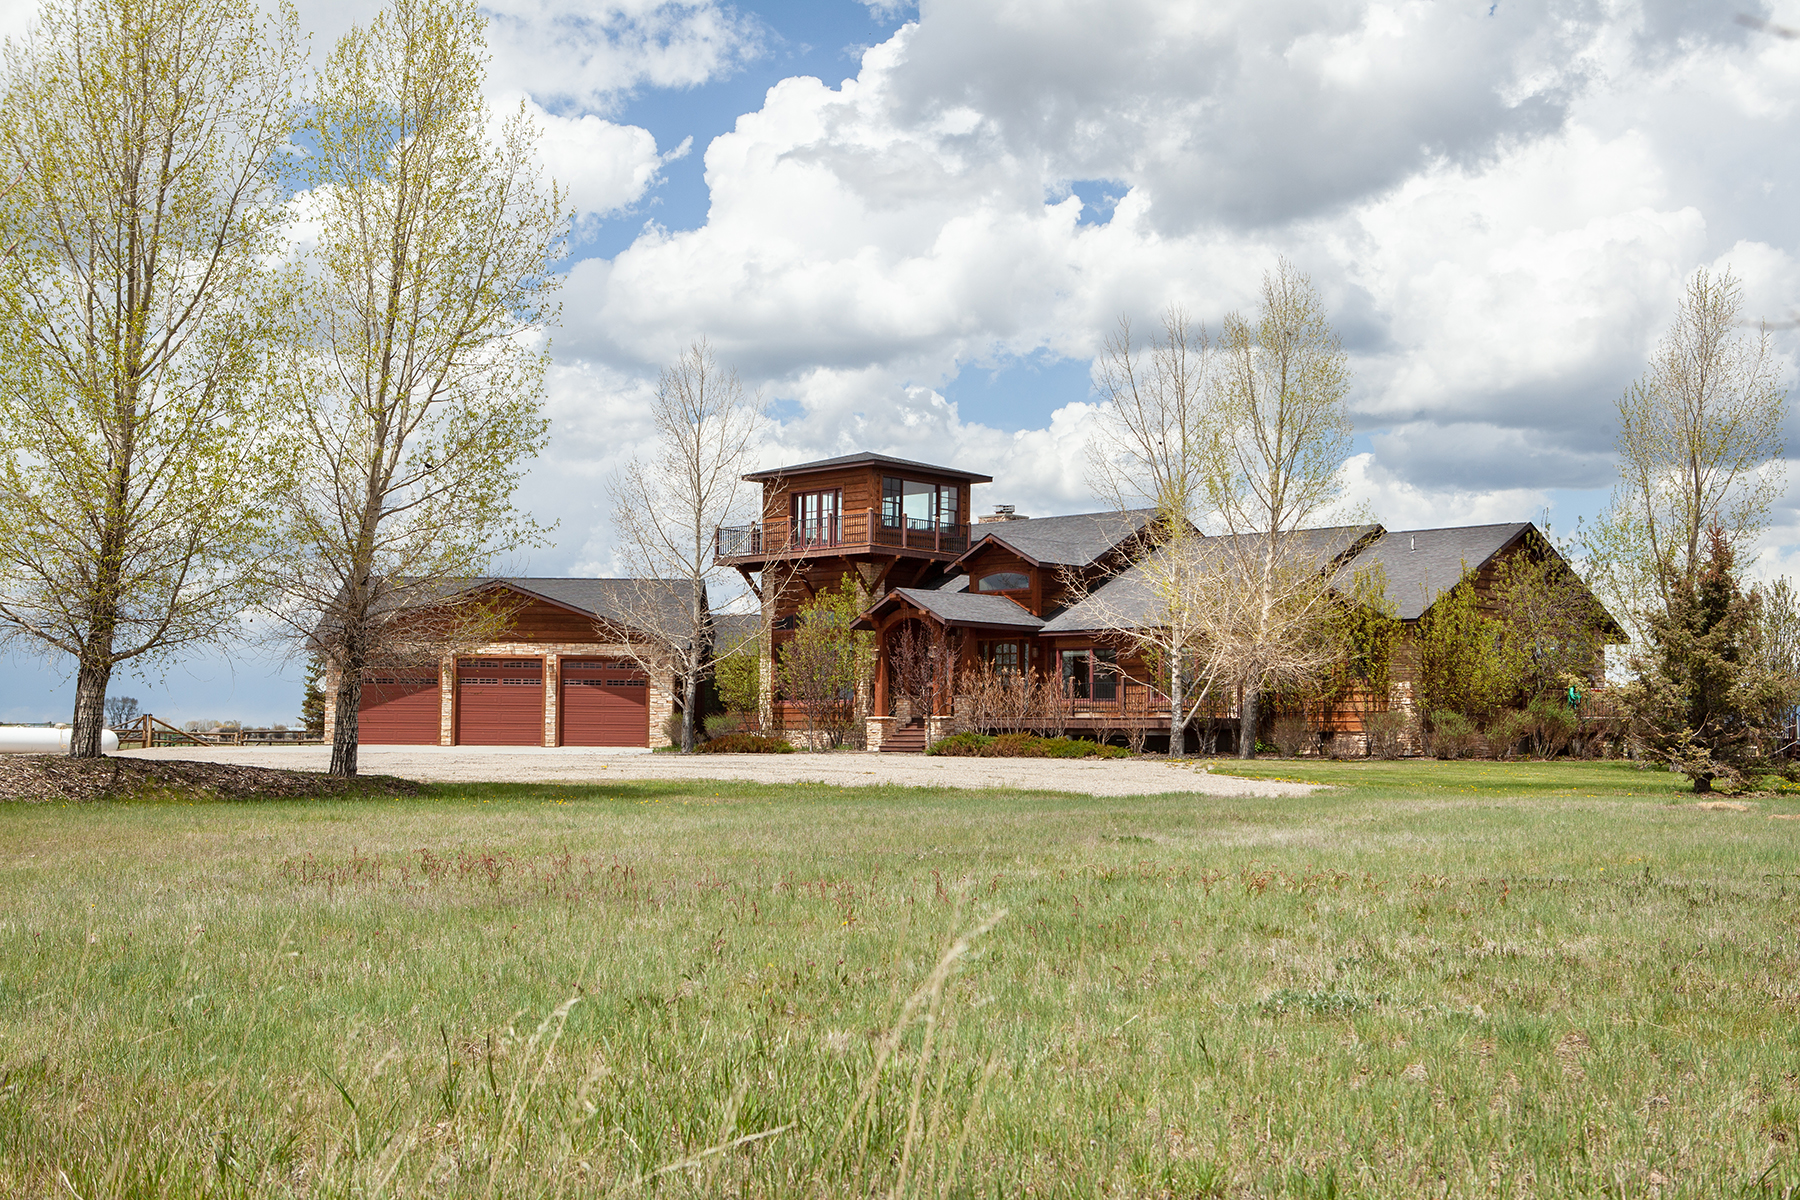 Single Family Homes for Active at Equestrian Acreage with Wind River Views 83 GRABLE LN. Boulder, Wyoming 82923 United States